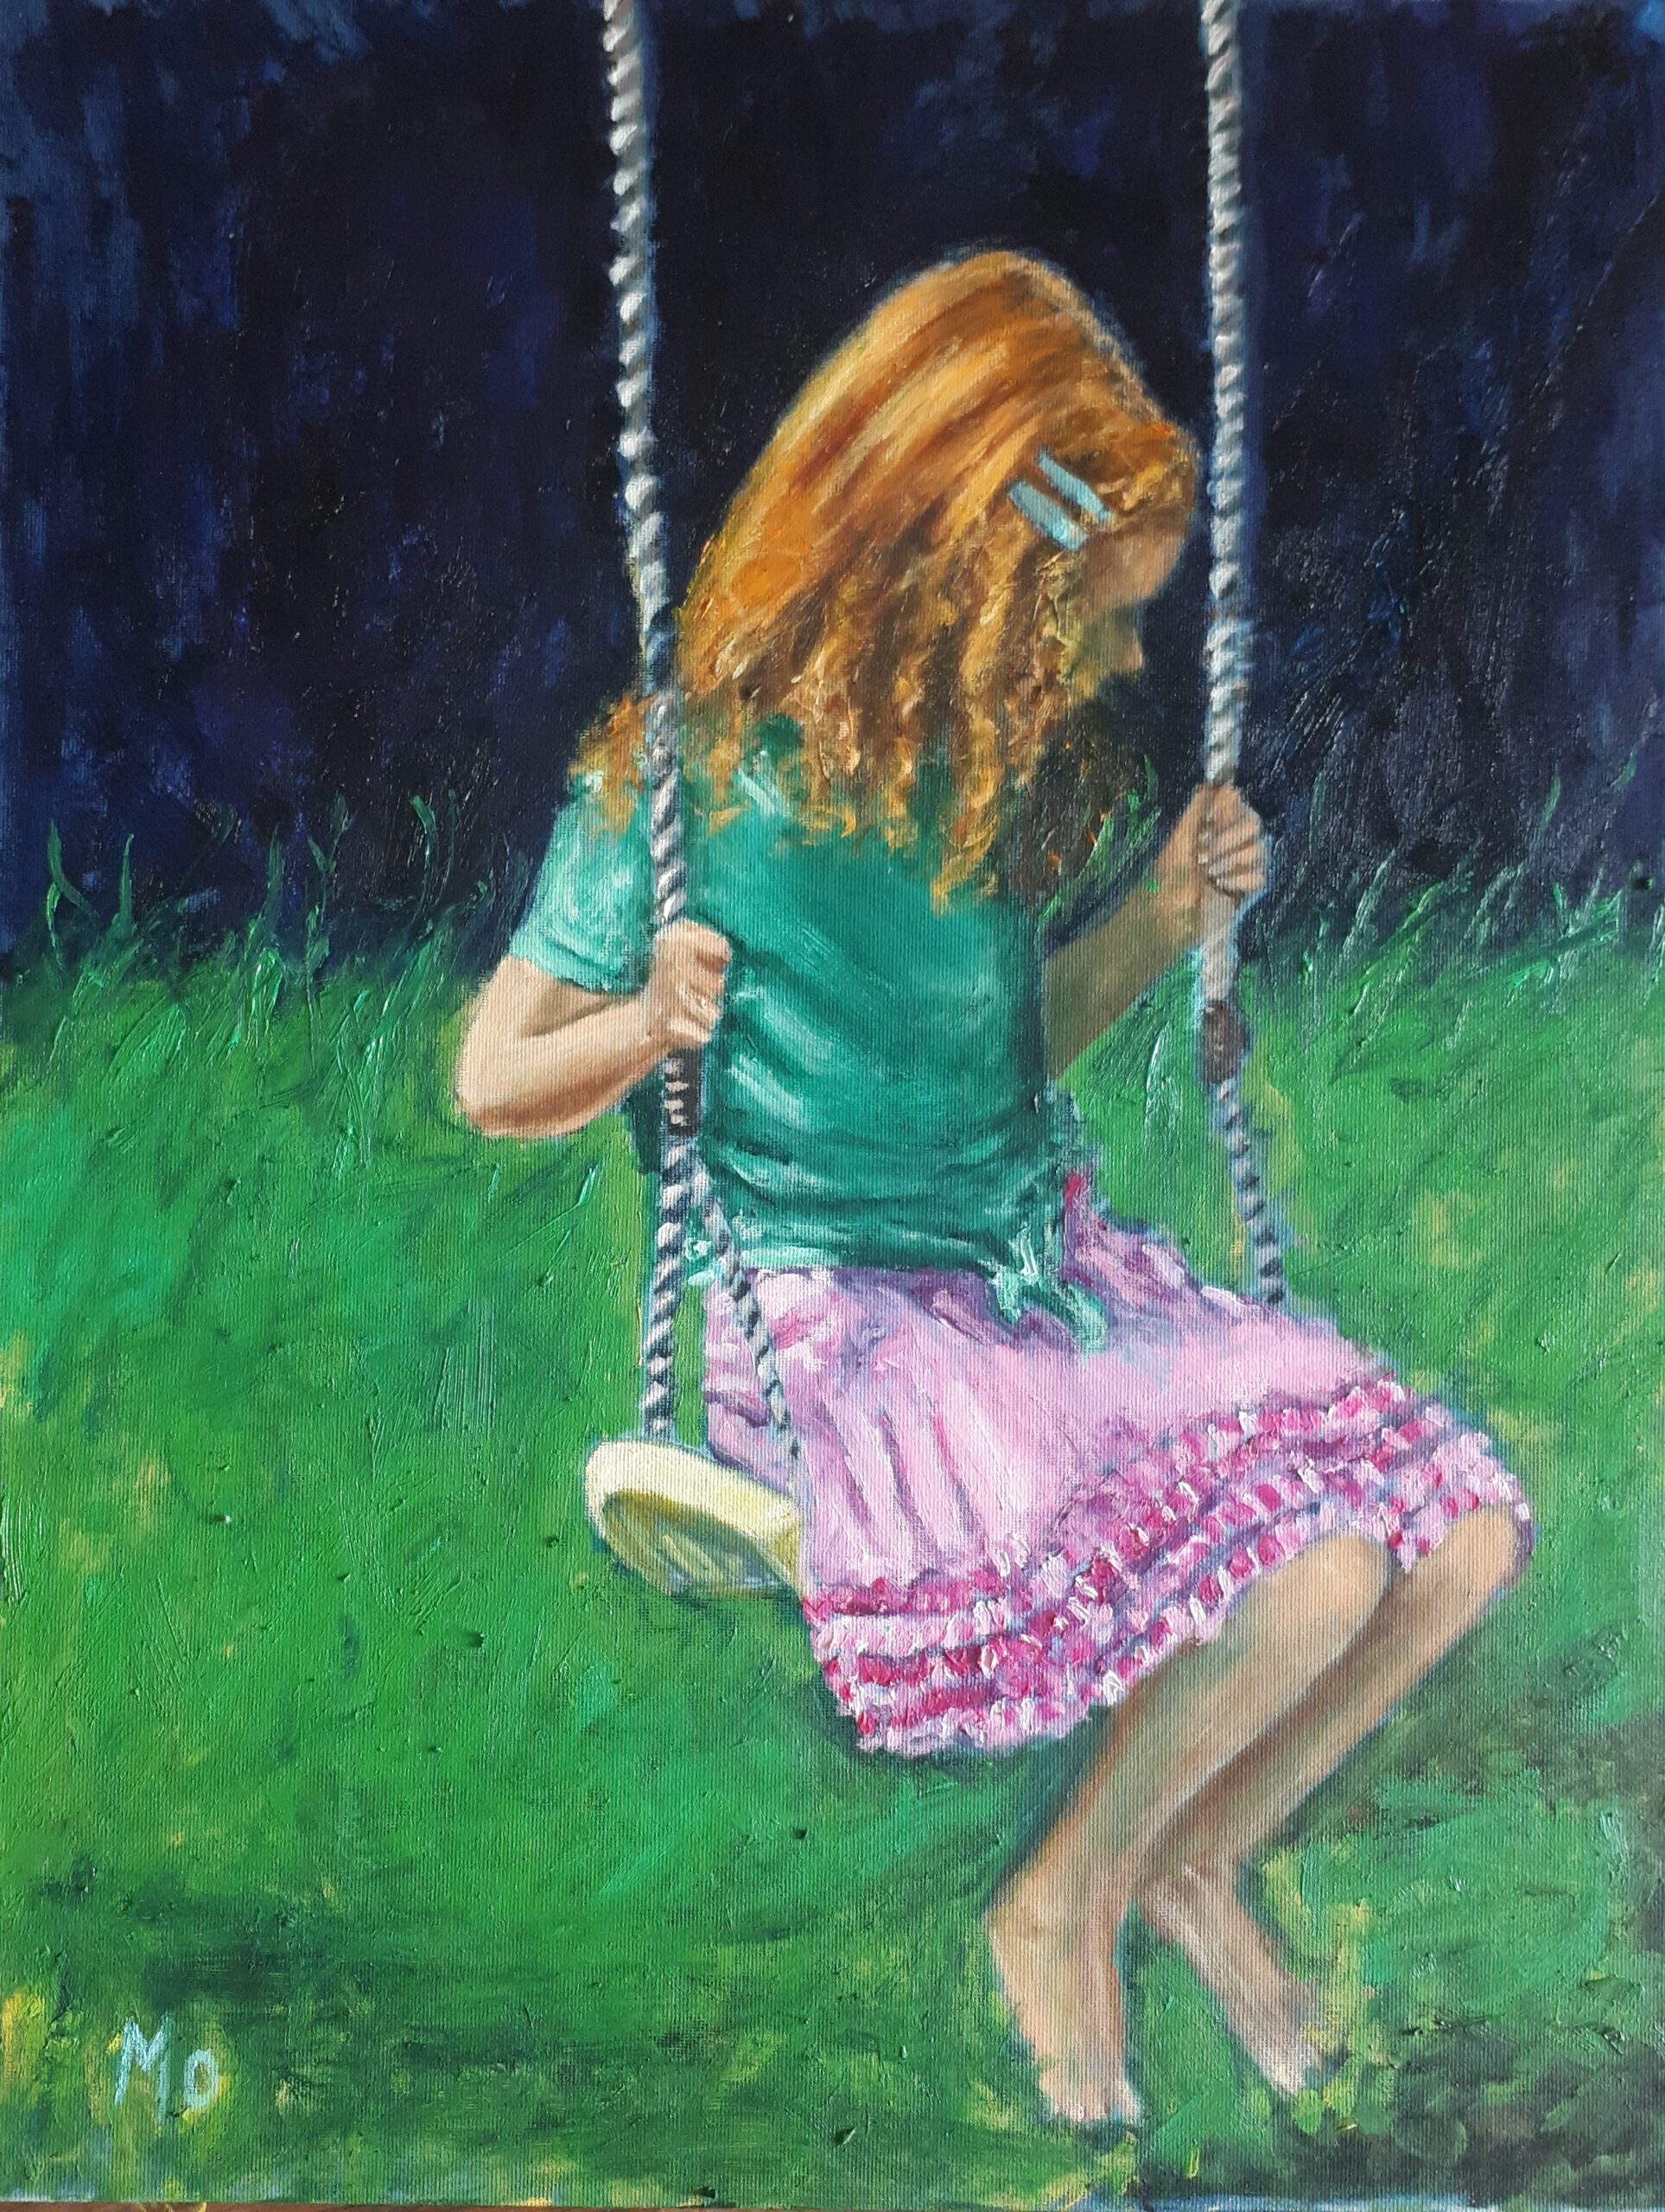 Redheaded girl on a swing